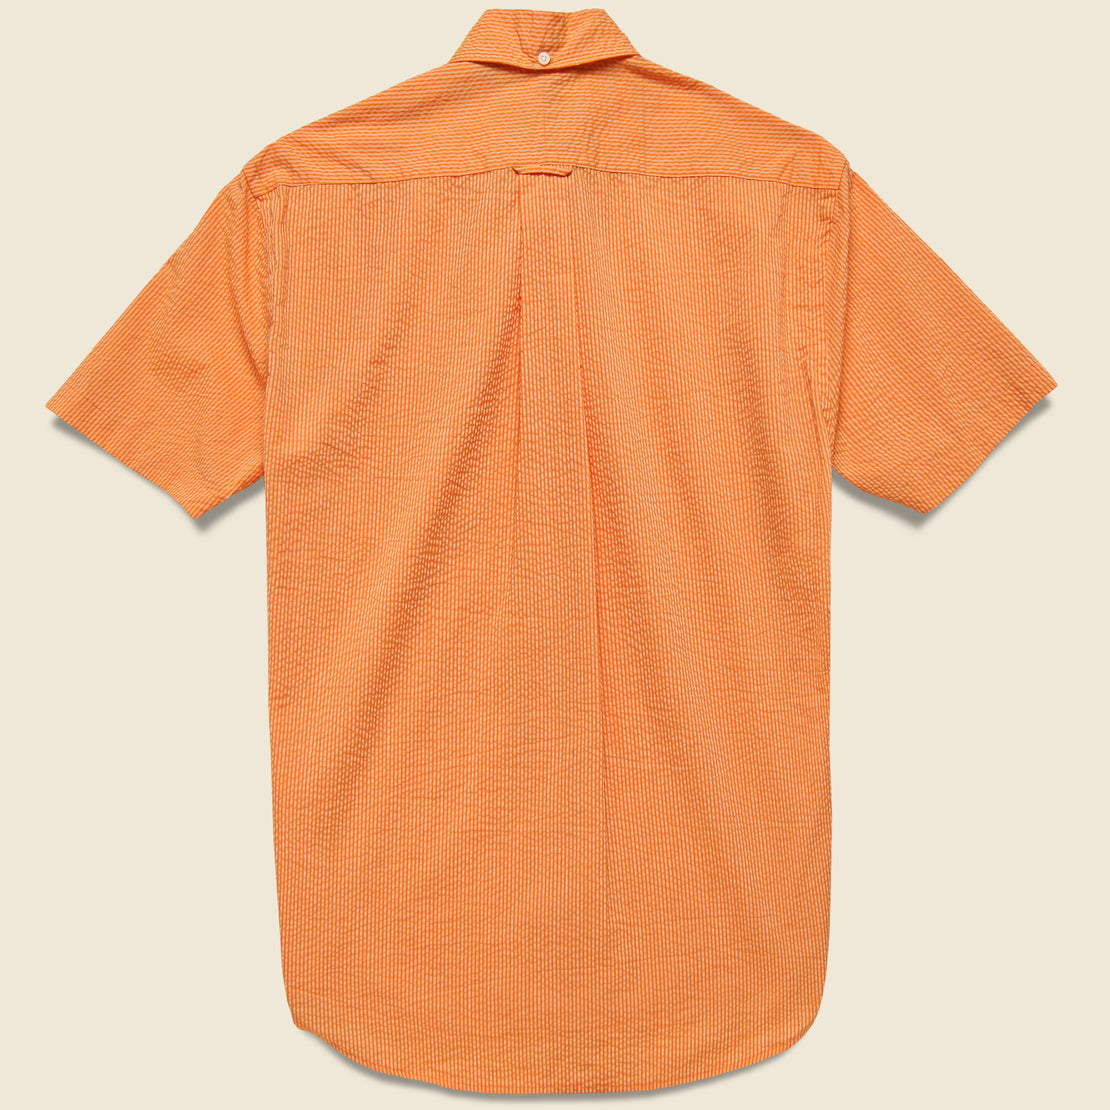 Neon Stripe Seersucker Oxford Shirt - Orange